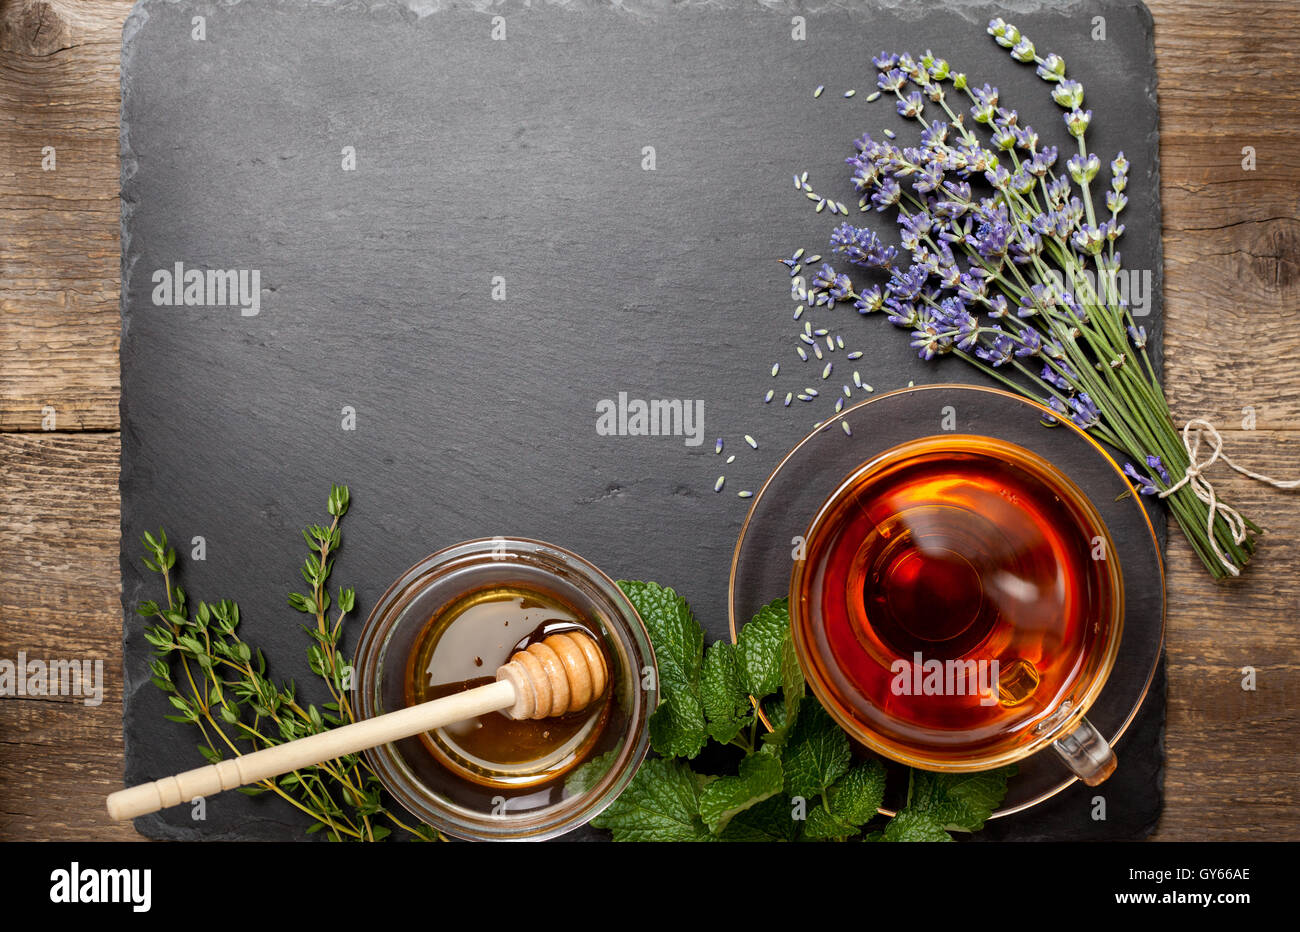 A Marble In A Cup Of Honey : Herbal tea in a glass cup honey different types of herbs